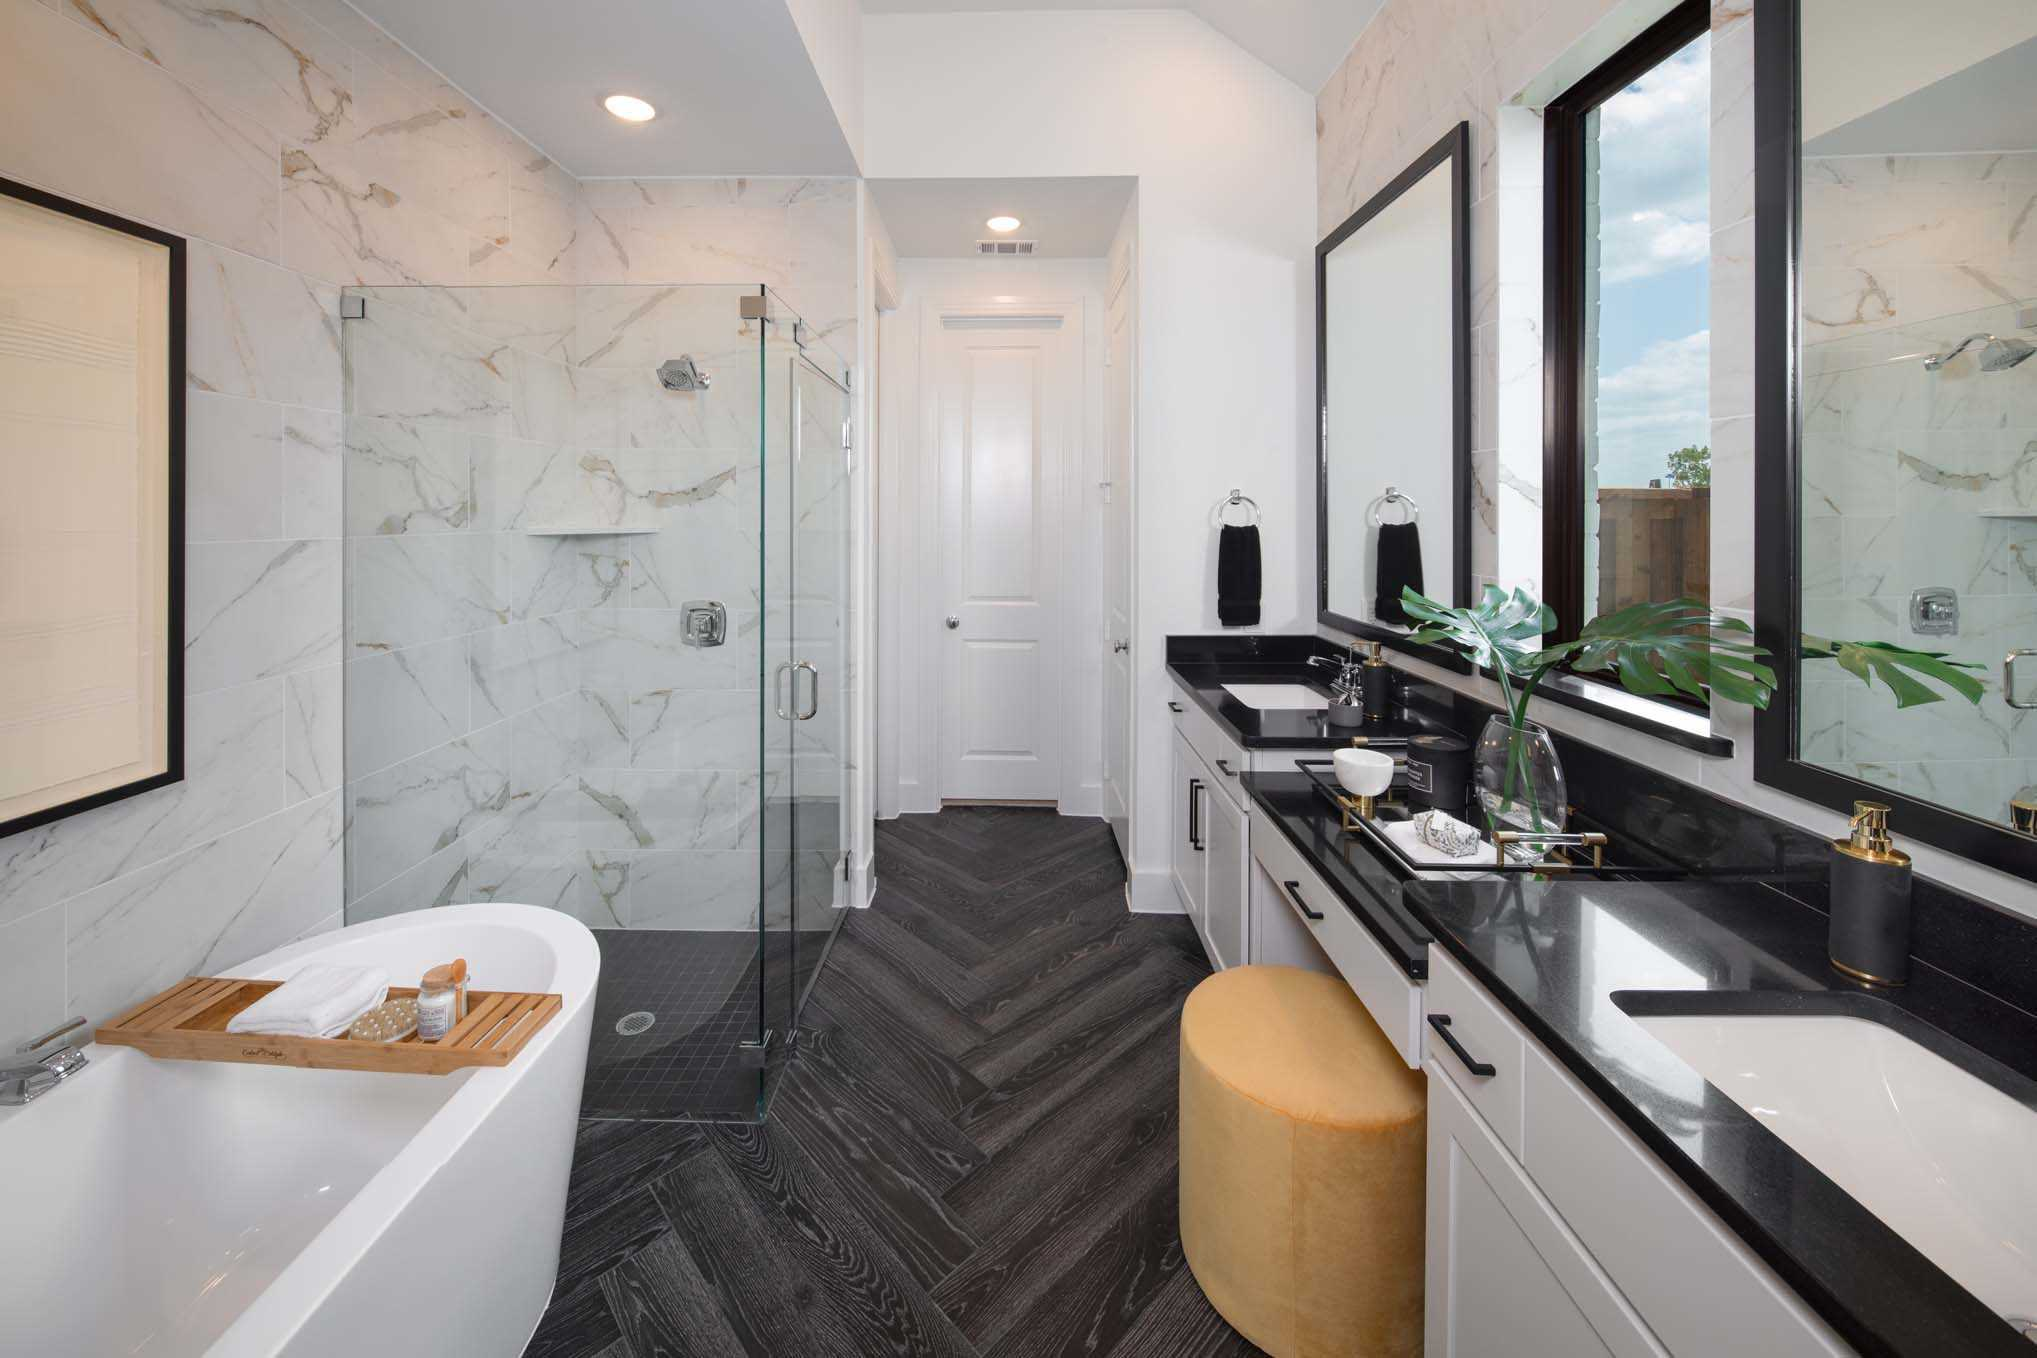 Bathroom featured in the Plan Davenport By Highland Homes in Houston, TX